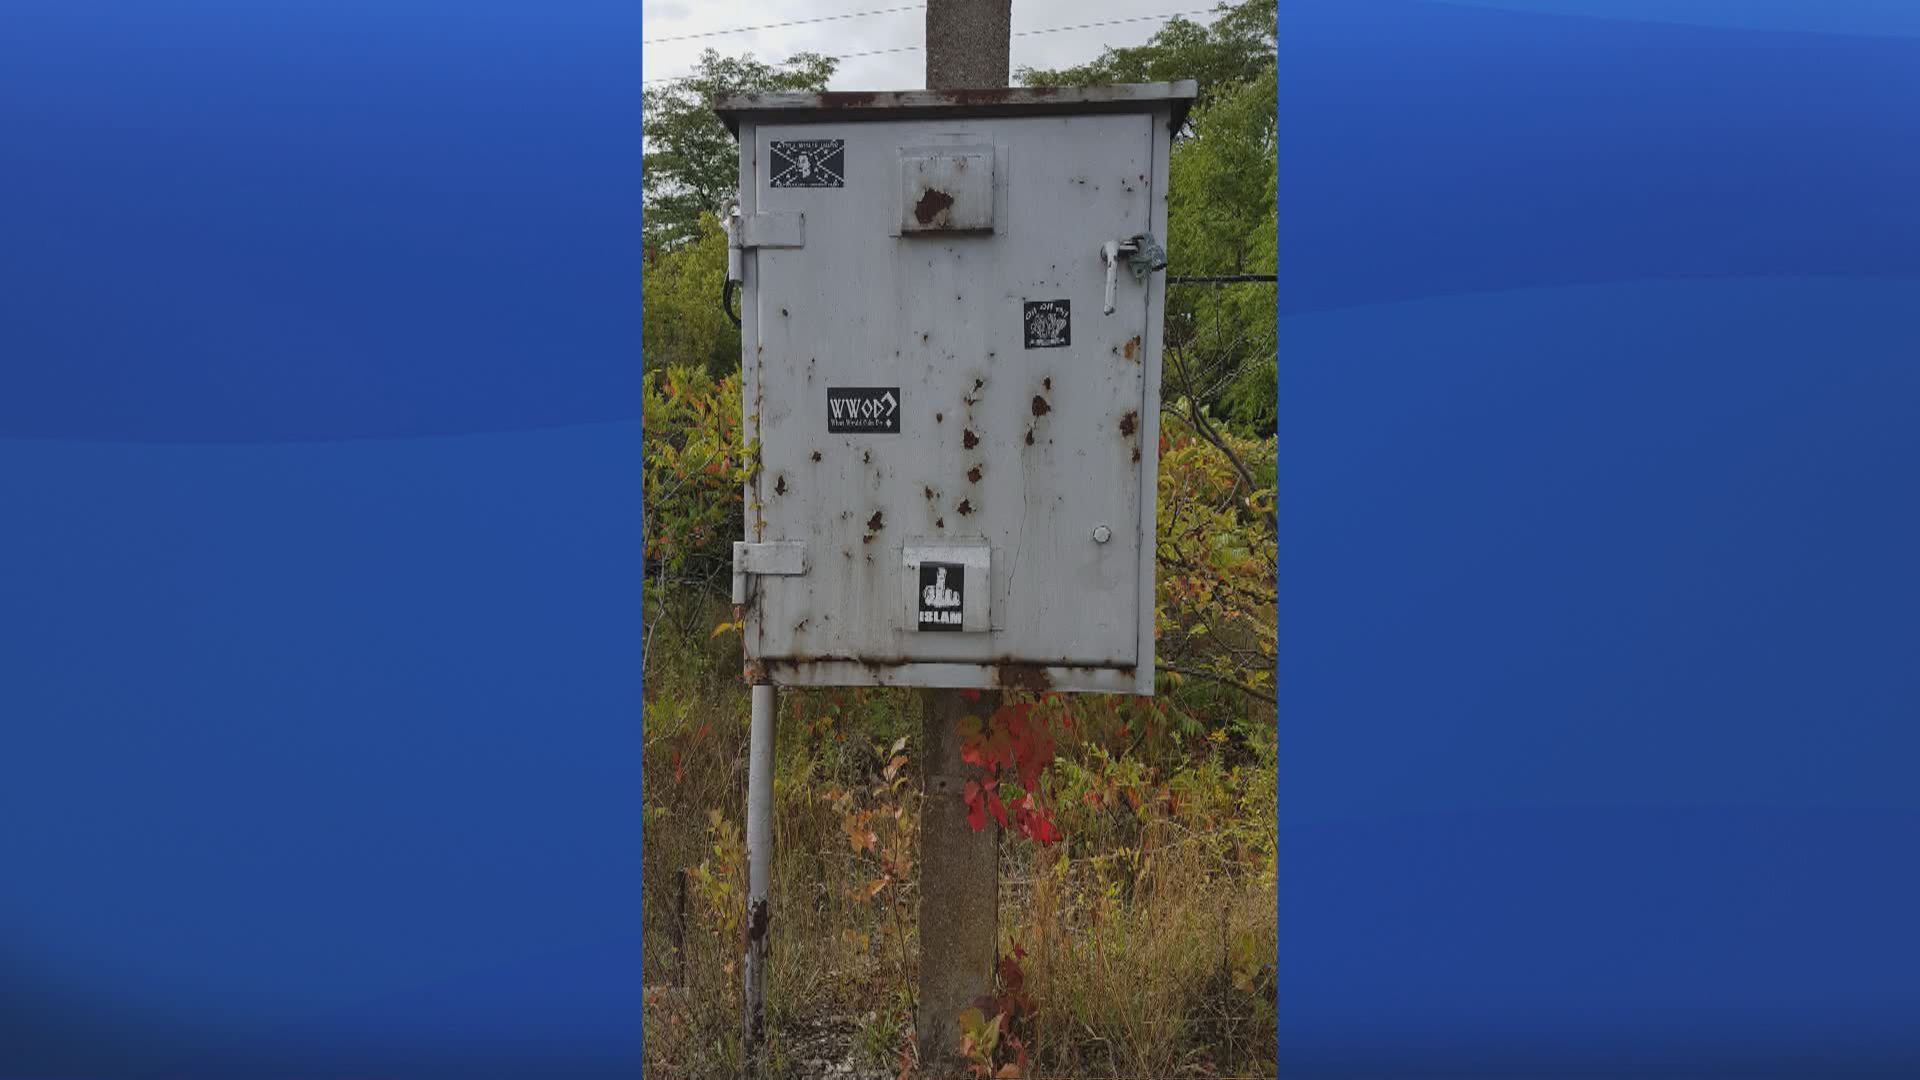 Police investigate after hate-based stickers found across Owen Sound